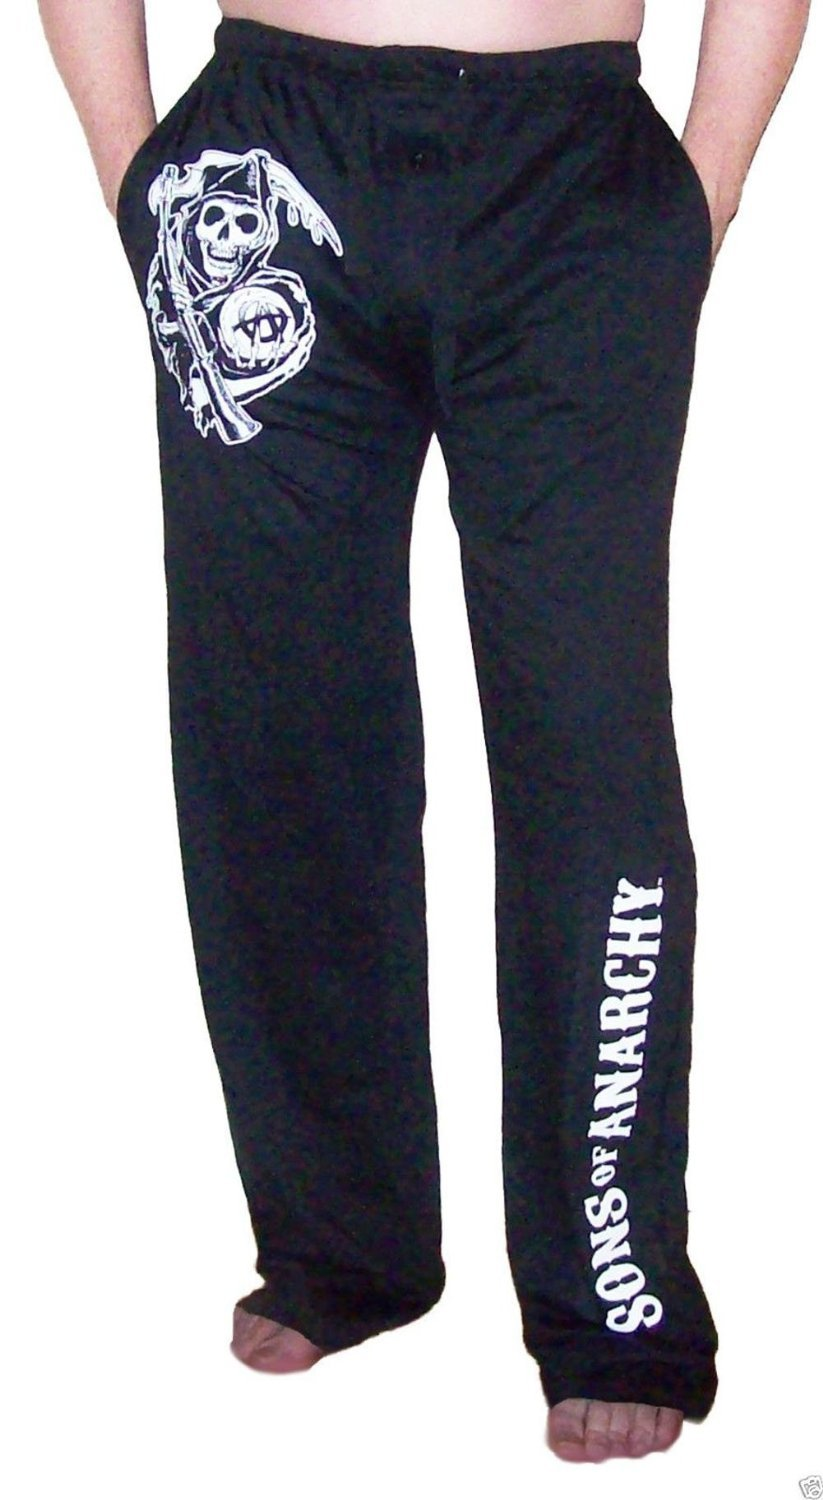 Sporticus Men's SOA Sons of Anarchy Pjs Pajamas Reaper Skull (Small)